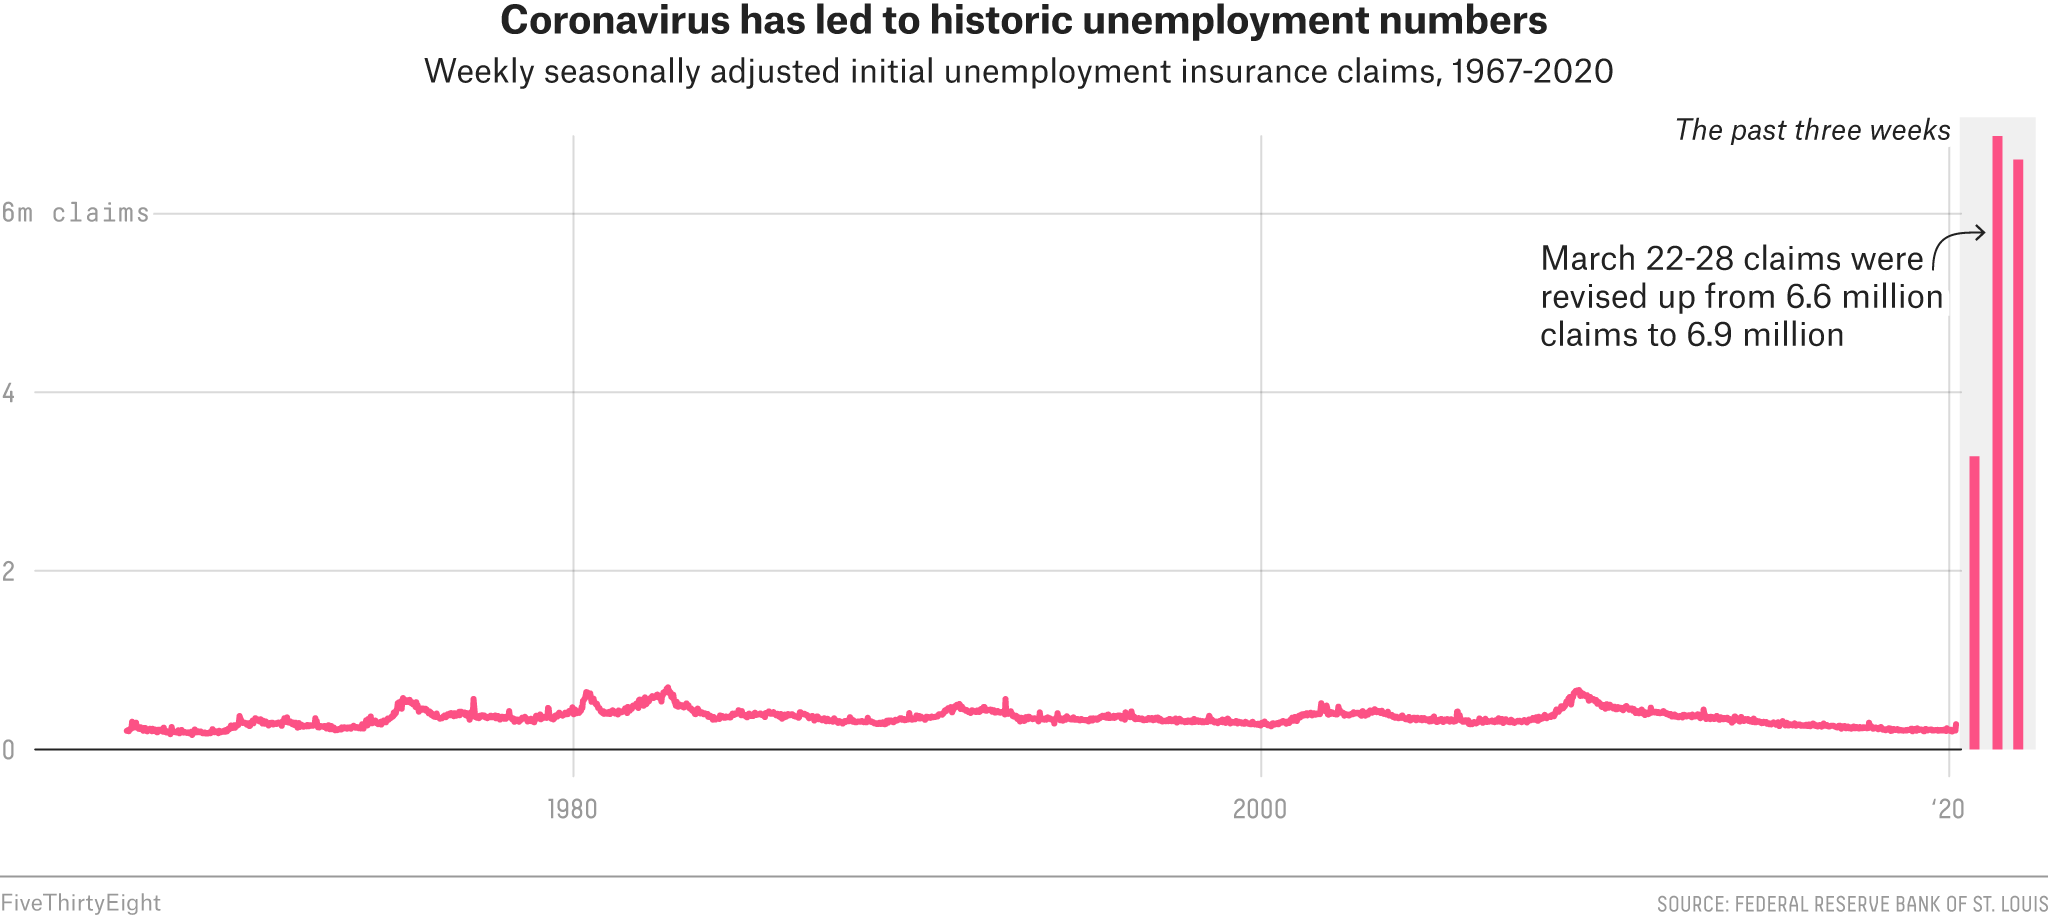 More Than 16 Million Americans Have Lost Their Jobs In The Past Three Weeks 3